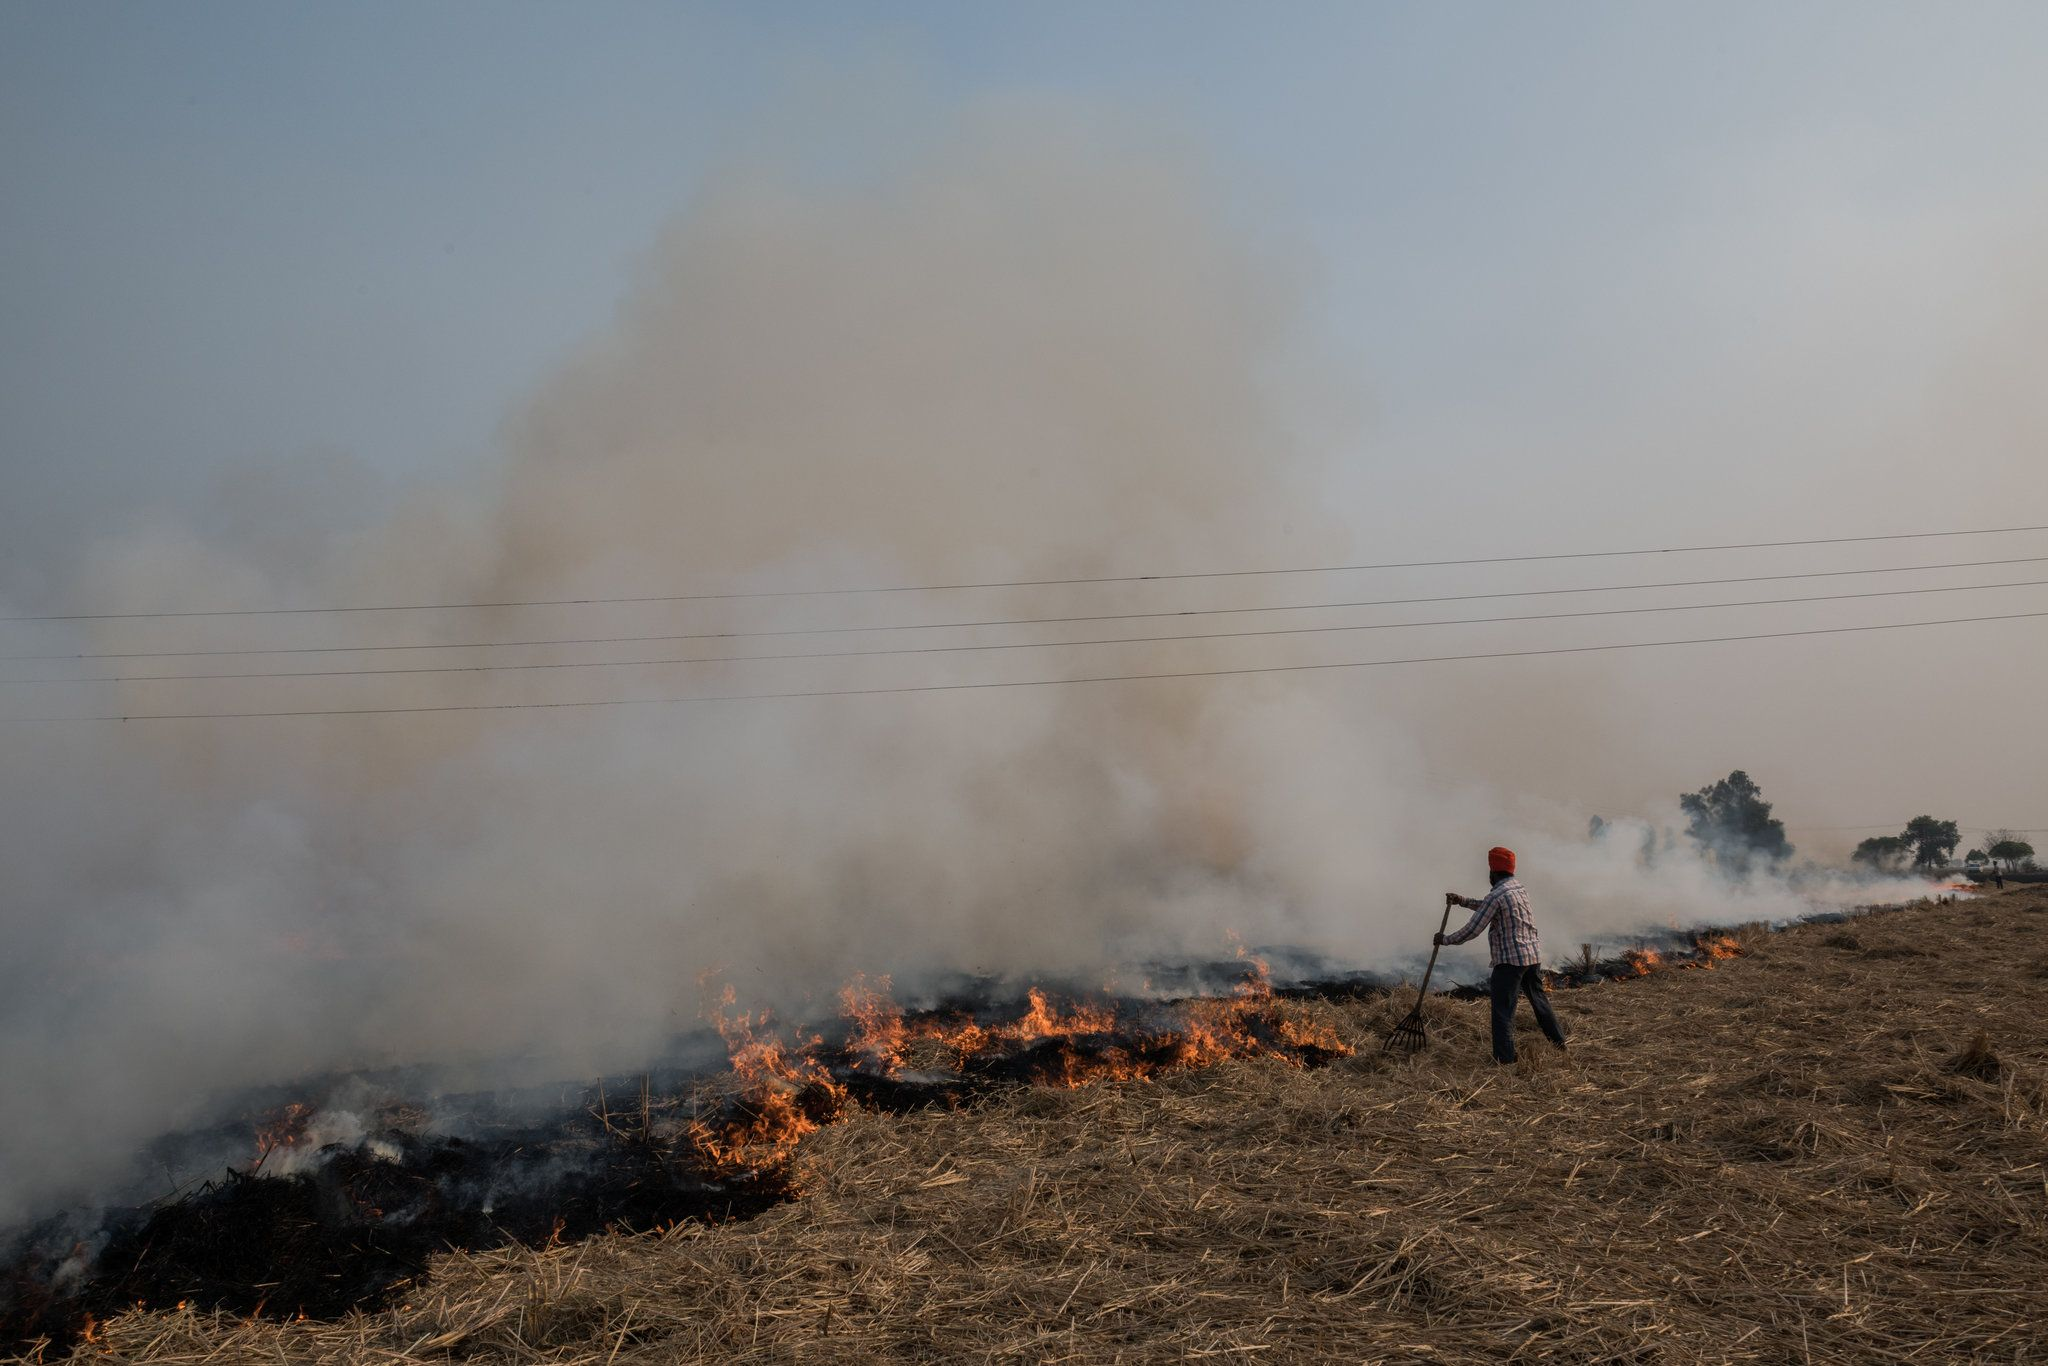 As World S Air Gets Worse India Struggles To Breathe World News